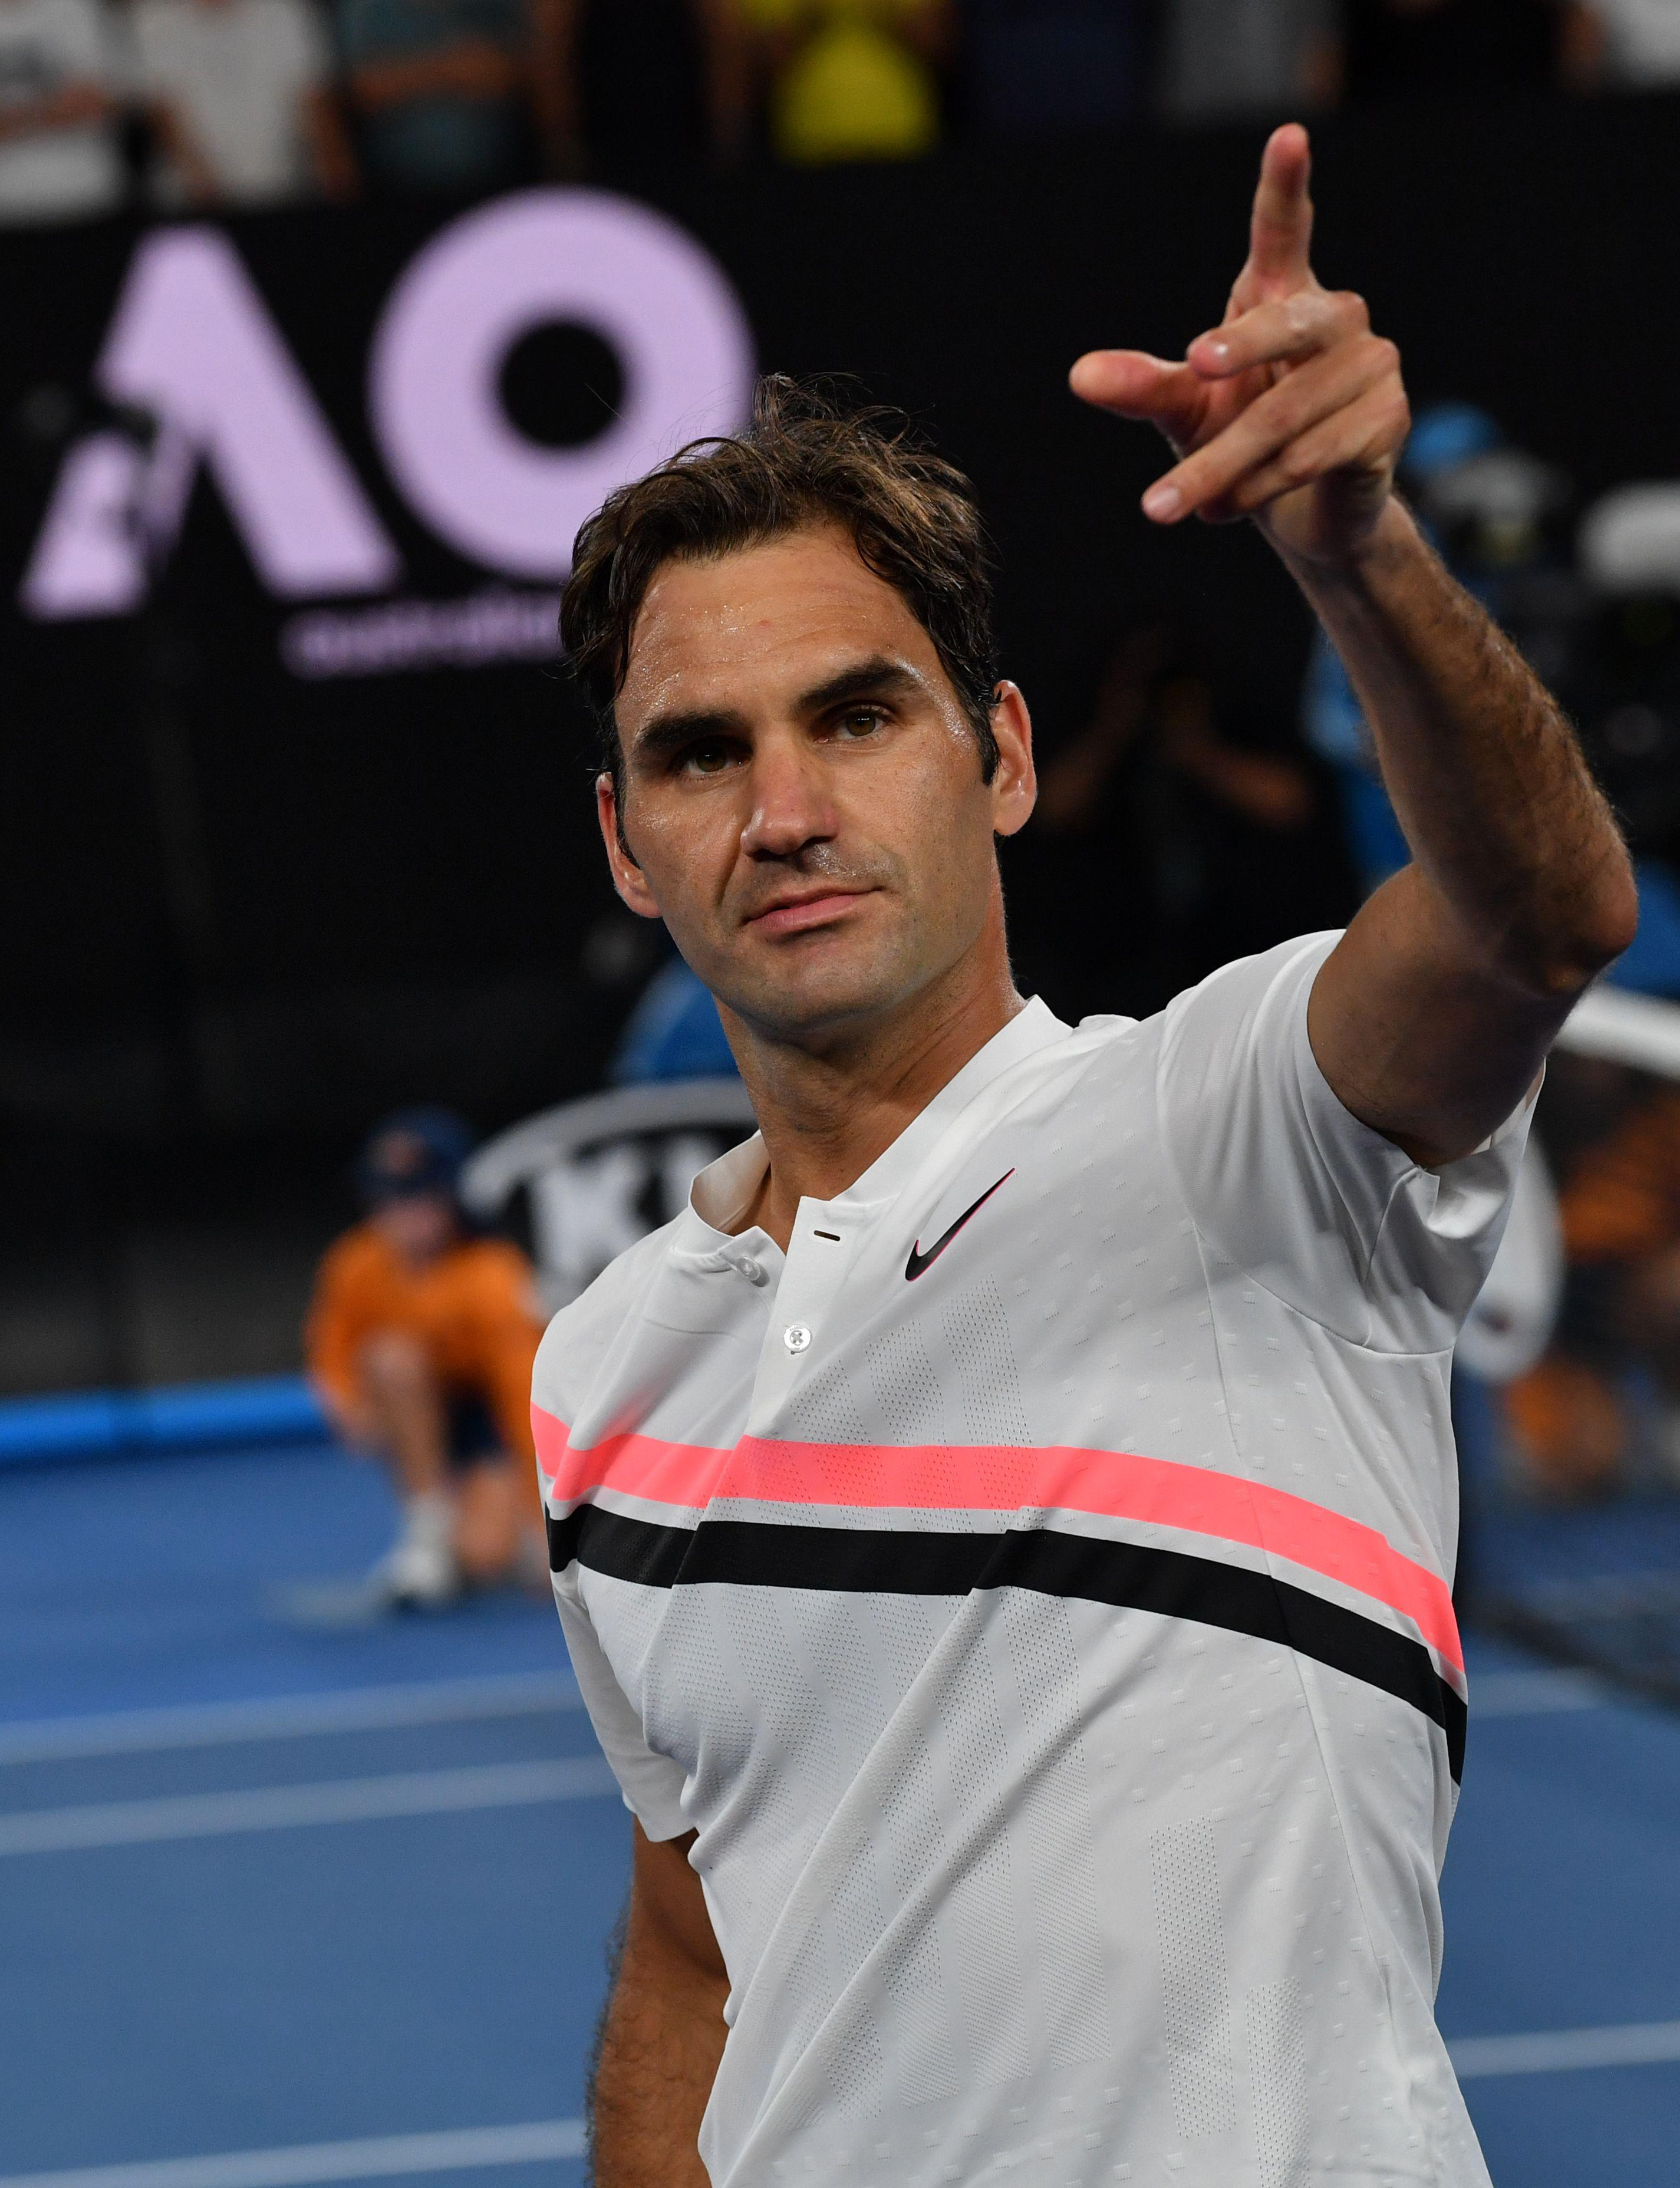 Roger Federer is yet to drop a set at the Australian Open as he surges into the semis